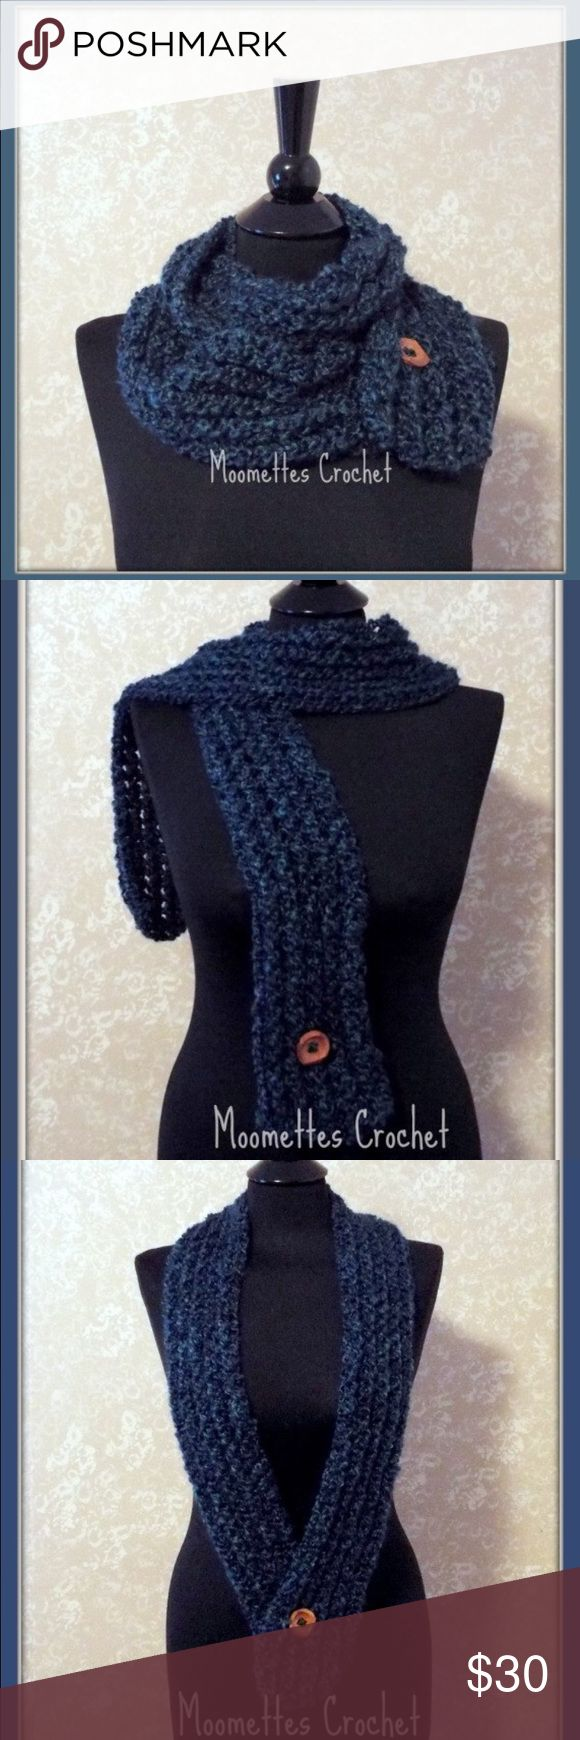 NEW Handmade Infinity Scarf Blue Wood Button NEW This is a Handmade Boho crochet infinity scarf.  Dark Blue. Adjustable cowl neckwarmer. Wood button.  Handmade crochet scarf. This long scarf is created with soft yarn in dark blue making it a stylish cool weather scarf for fall fashion, winter or spring.  Crochet Handmade in USA 🇺🇸 by me.    Beautiful Red Chestnut Brown Wooden Button (lead free)  approximately 50 inches long by 4 inches wide.  Machine Washable, Dry on gentle cycle. Do not…